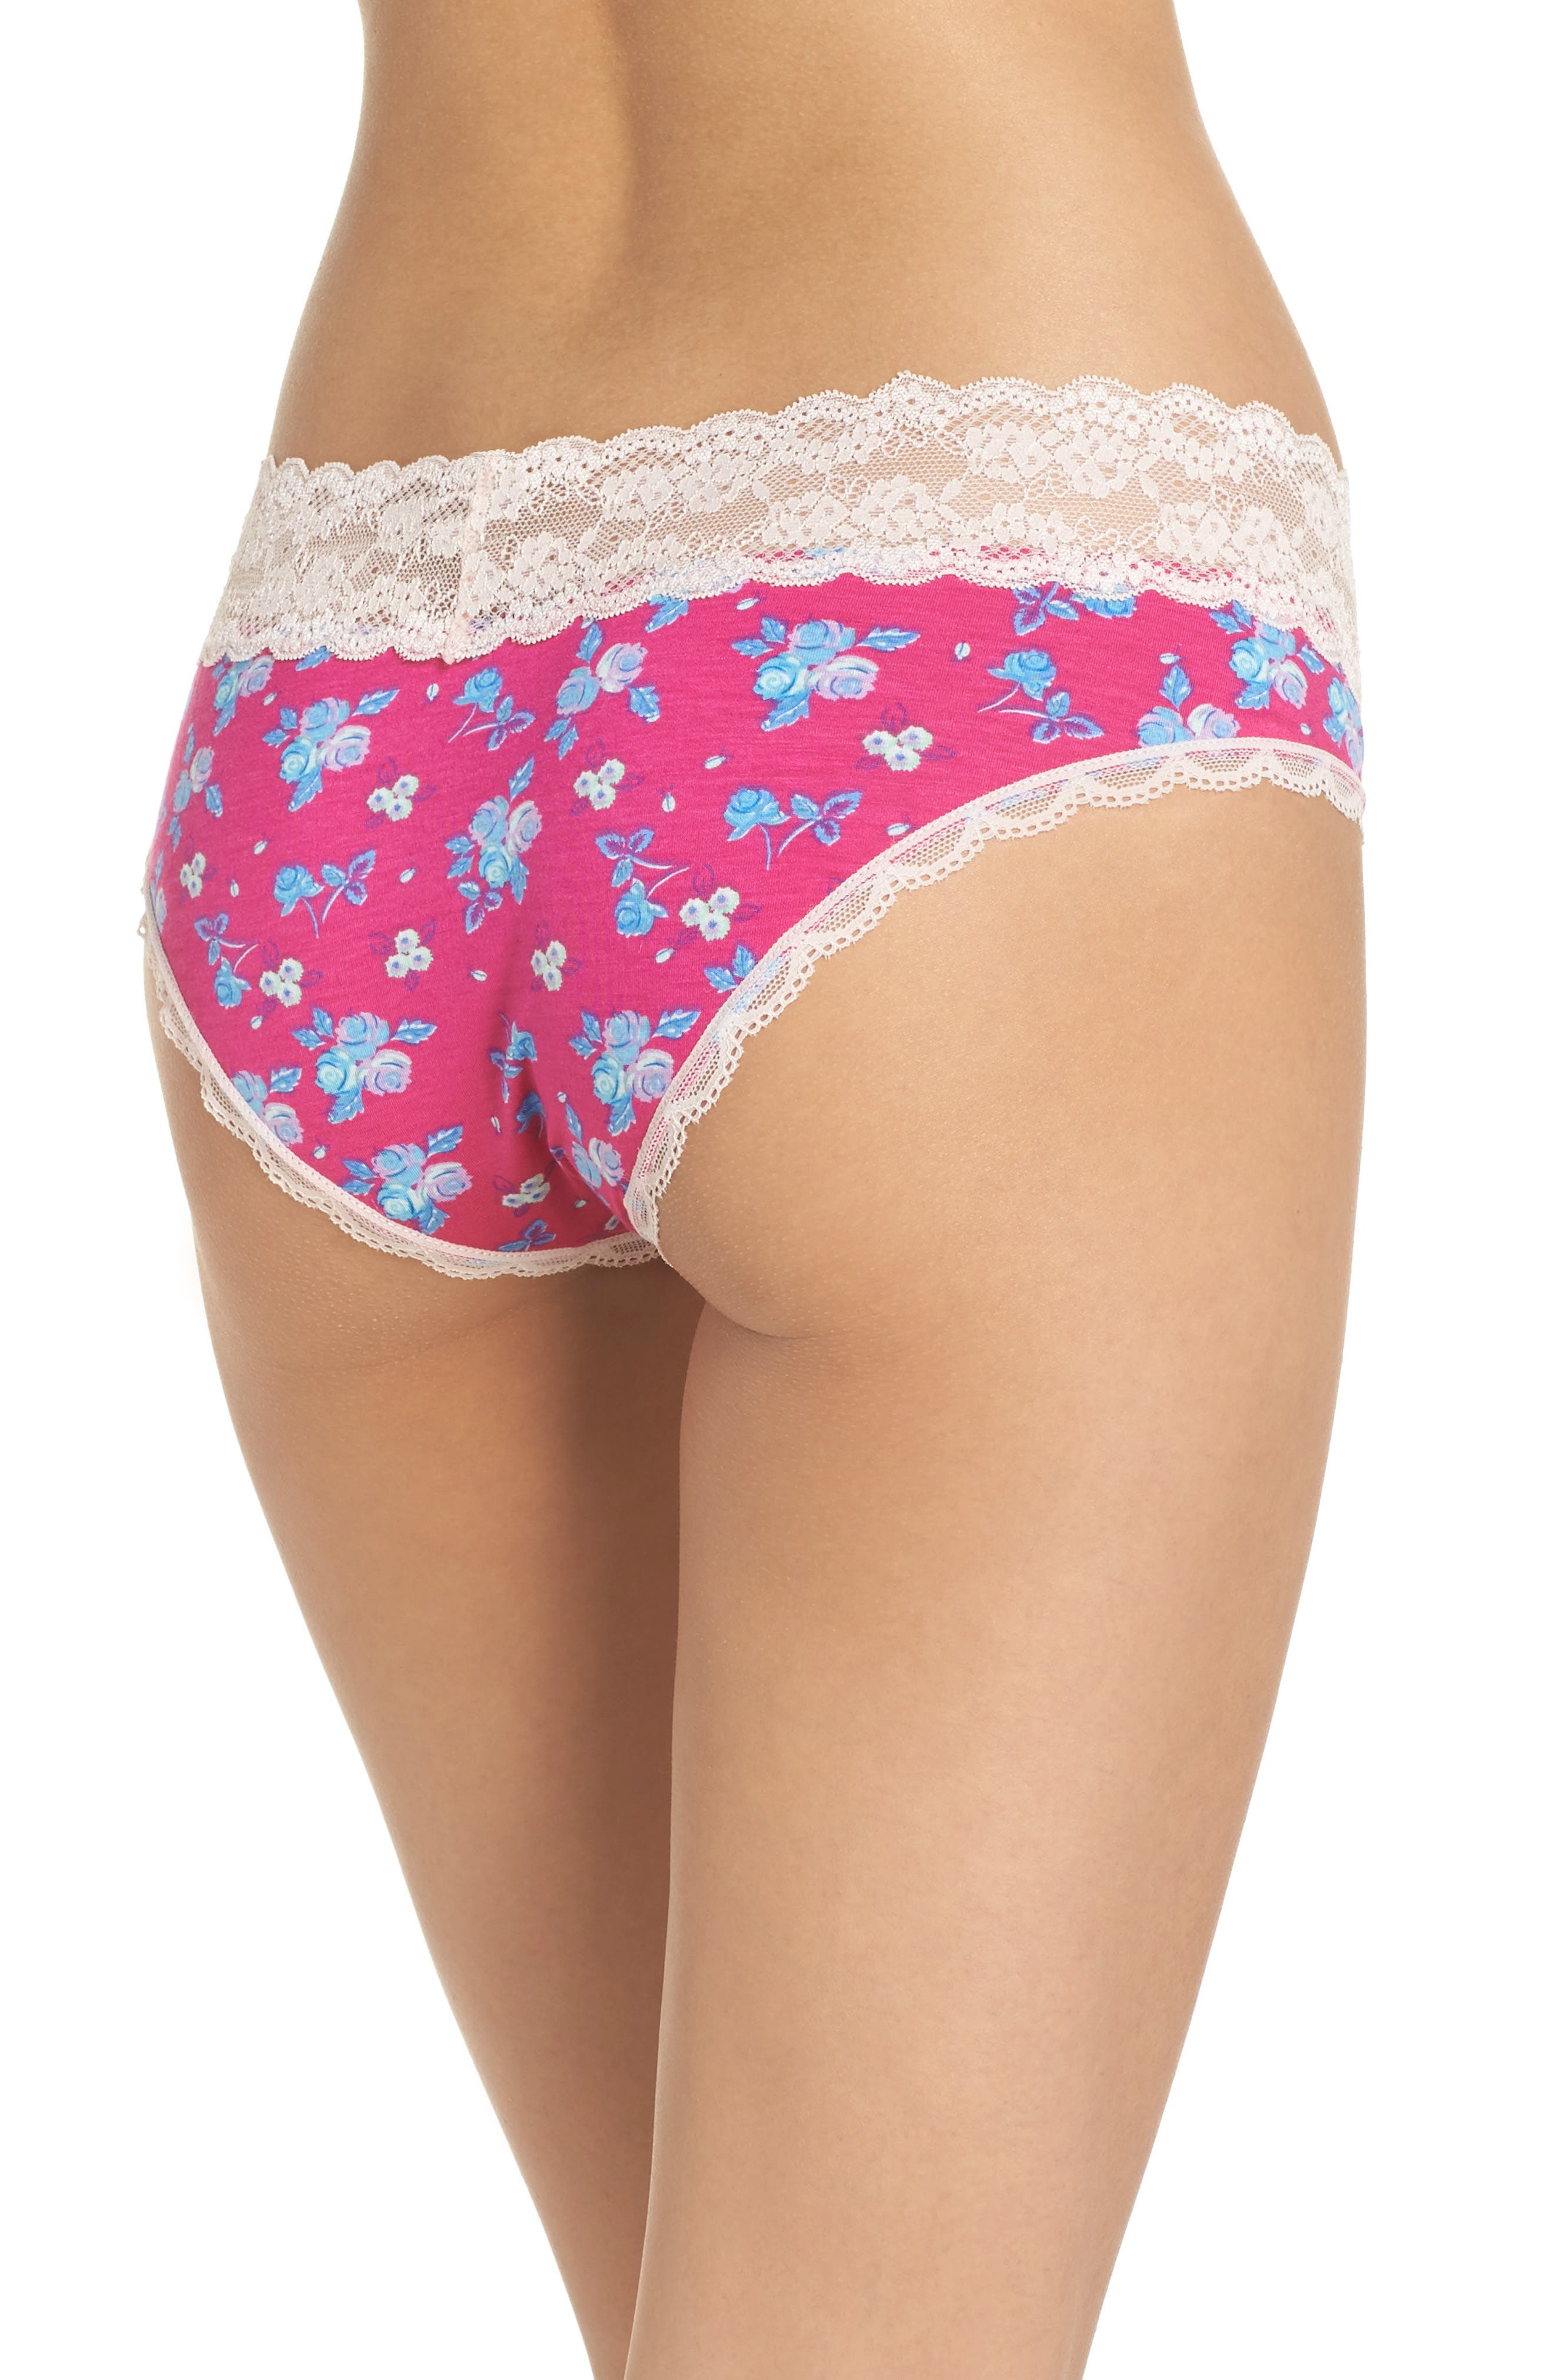 Alternate Image 2  - Honeydew Intimates Lace Waistband Hipster Panties (3 for $33)